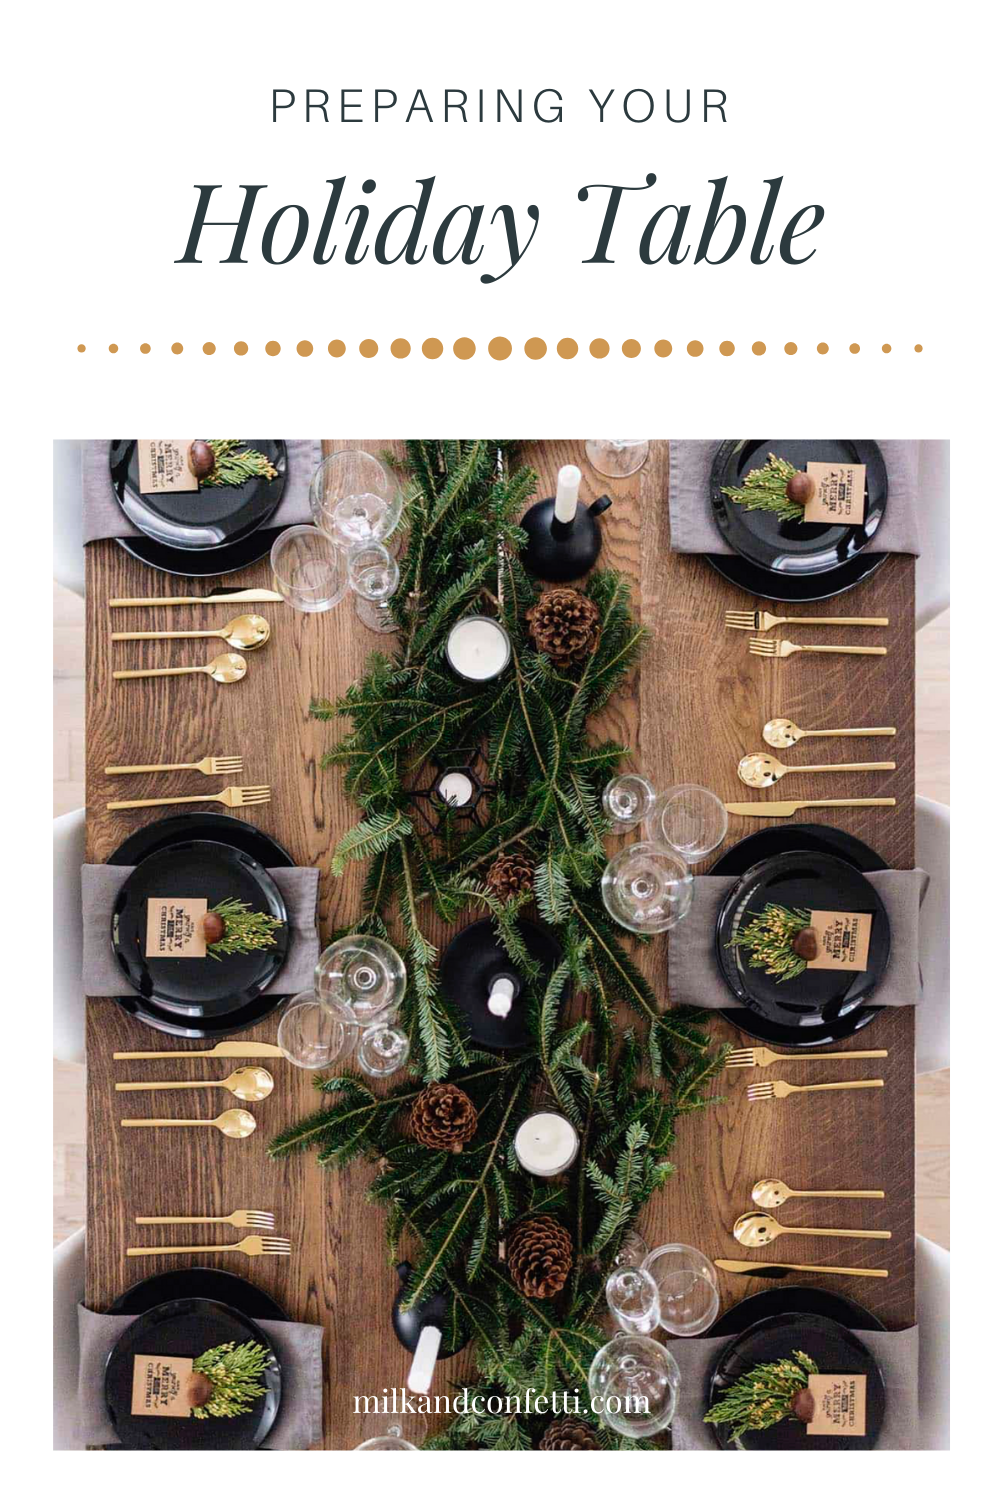 A festive holiday Christmas tablescape with a modern feel decorated with greenery garland, white candles and pine cones amongst black plates and gold cutlery on a brown wooden table.